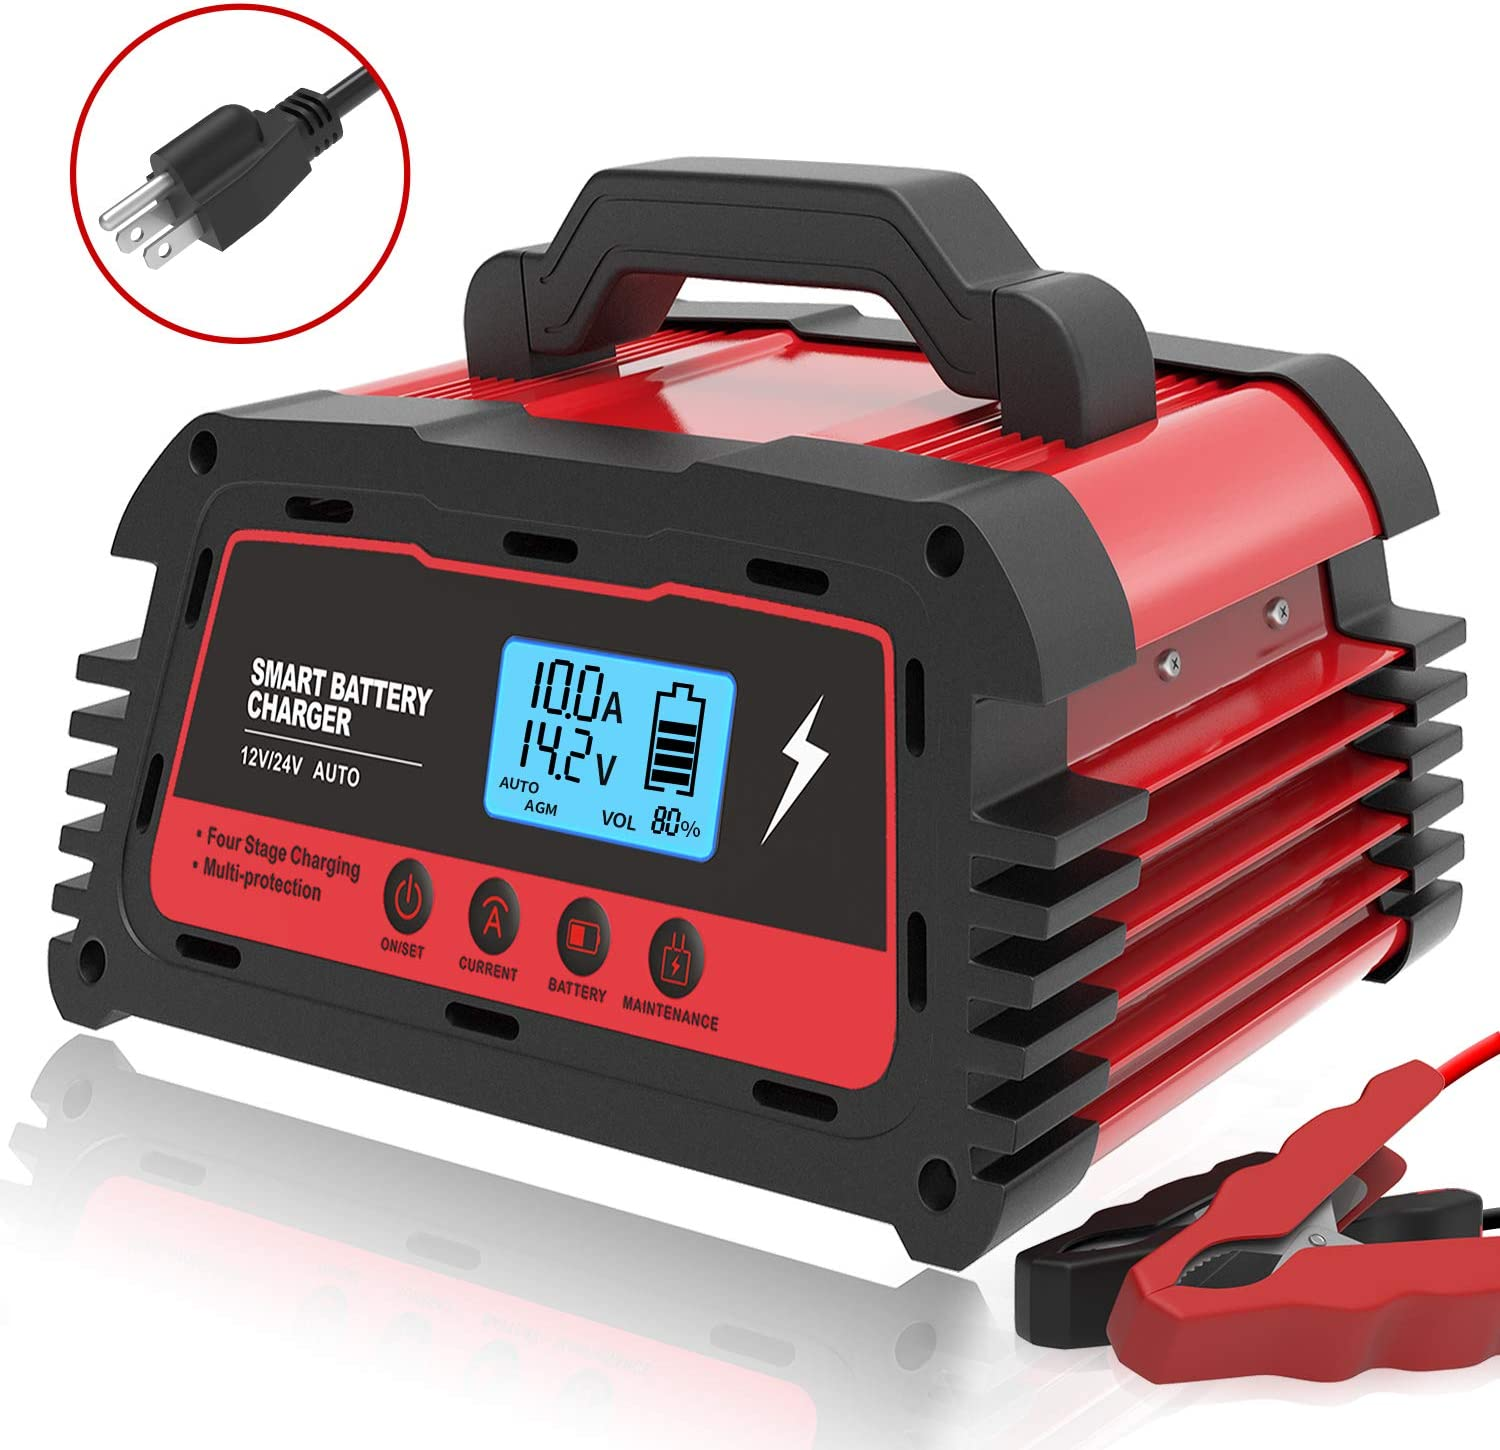 ATian Car Battery Charger 12V/20A 24V/10A Smart Fully Automatic Battery Maintainer Auto-Volt Detection with LDC Display for Car Motorcycle Lawn Mower VRLA SLA AGM GEM WET Lead Acid Batteries (Red)